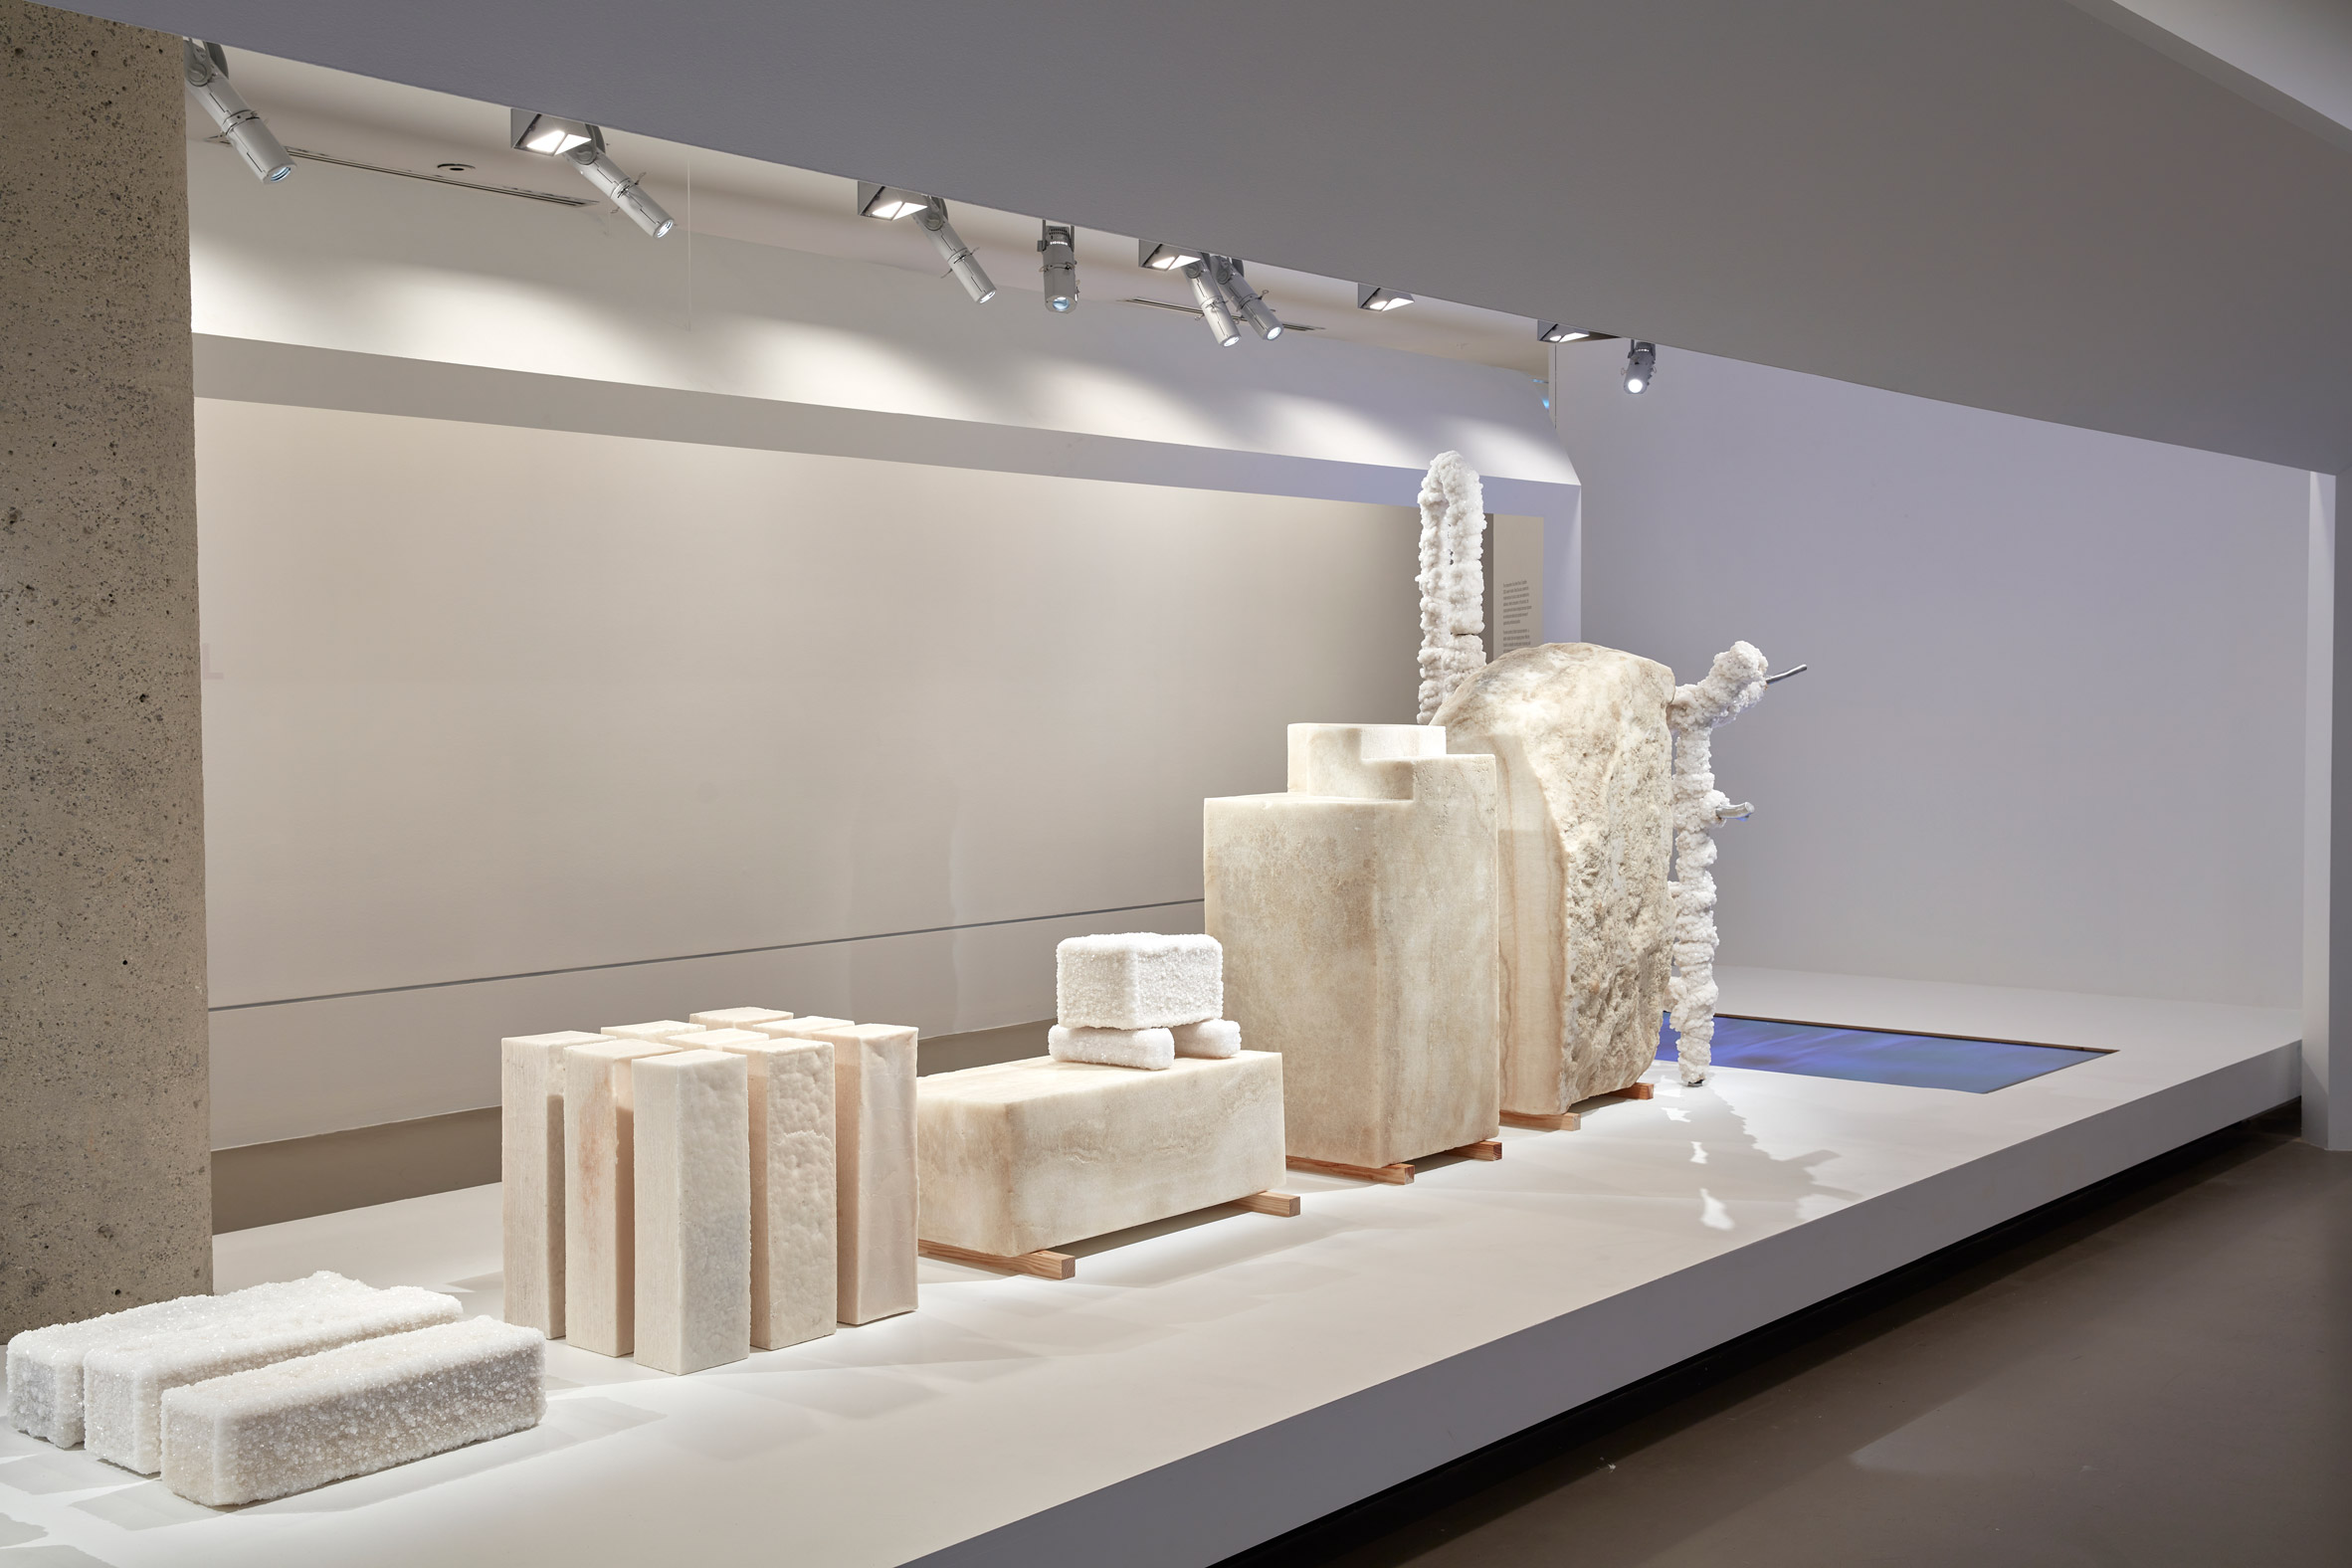 Exhibition of Crystalline salt blocks